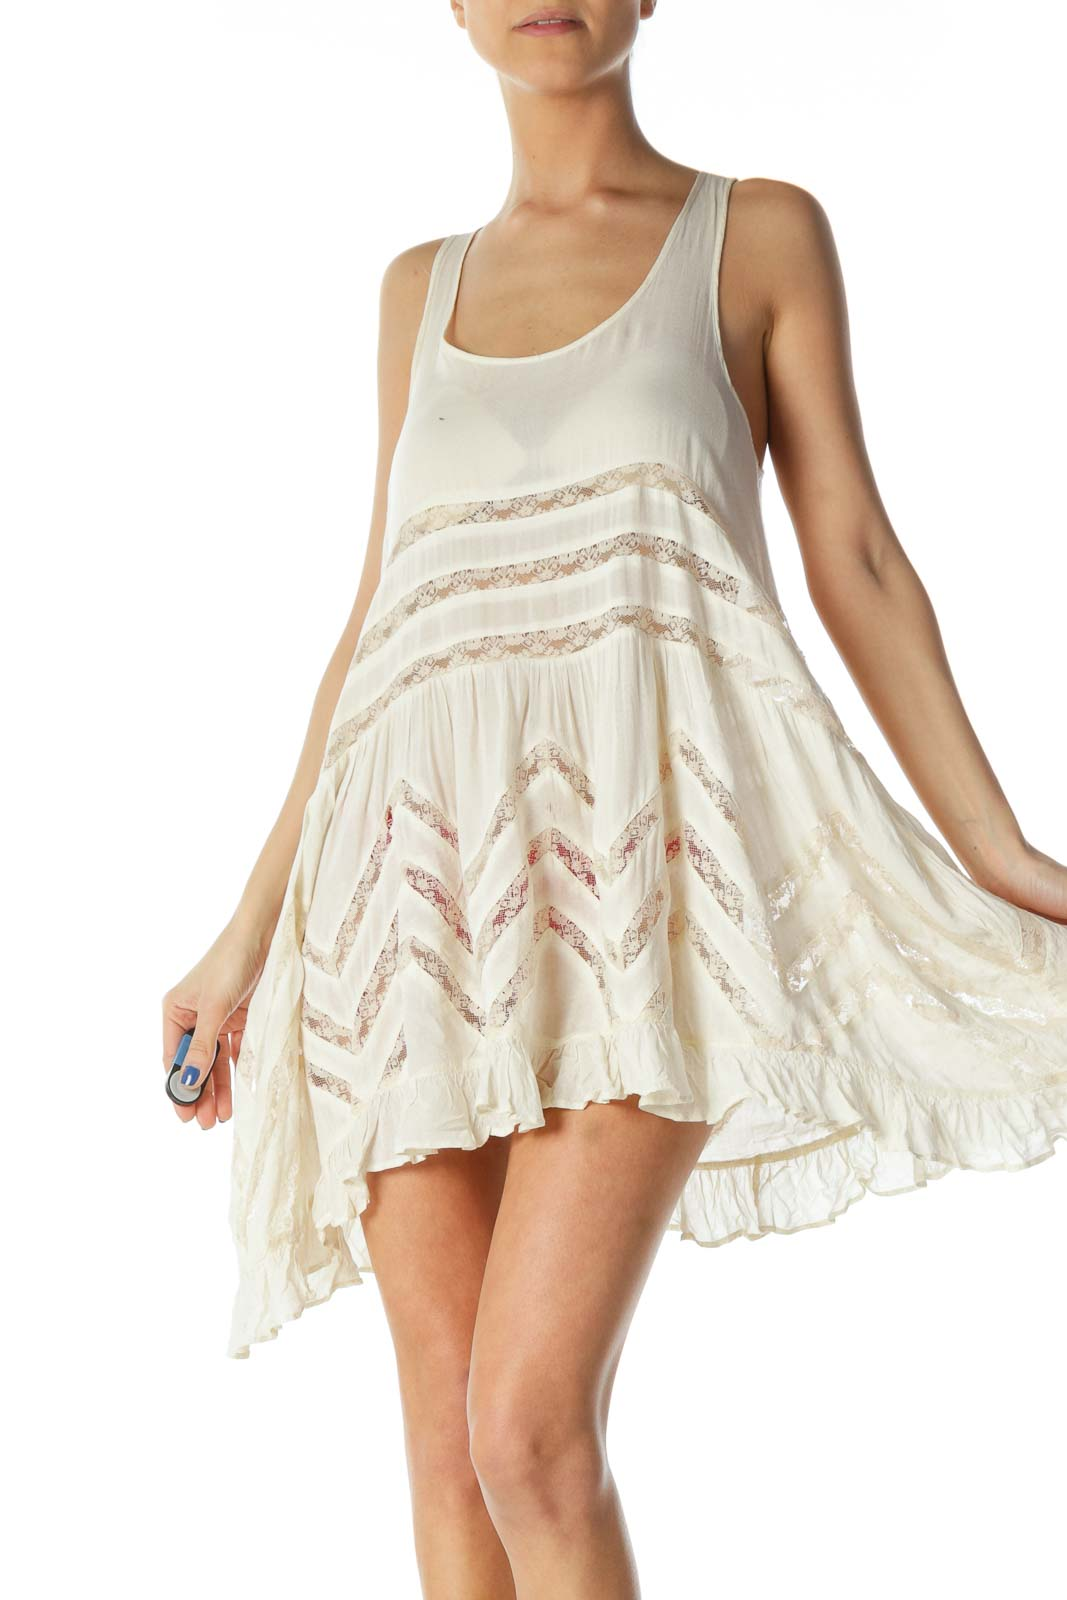 Beige Flowy Lace Tank Top